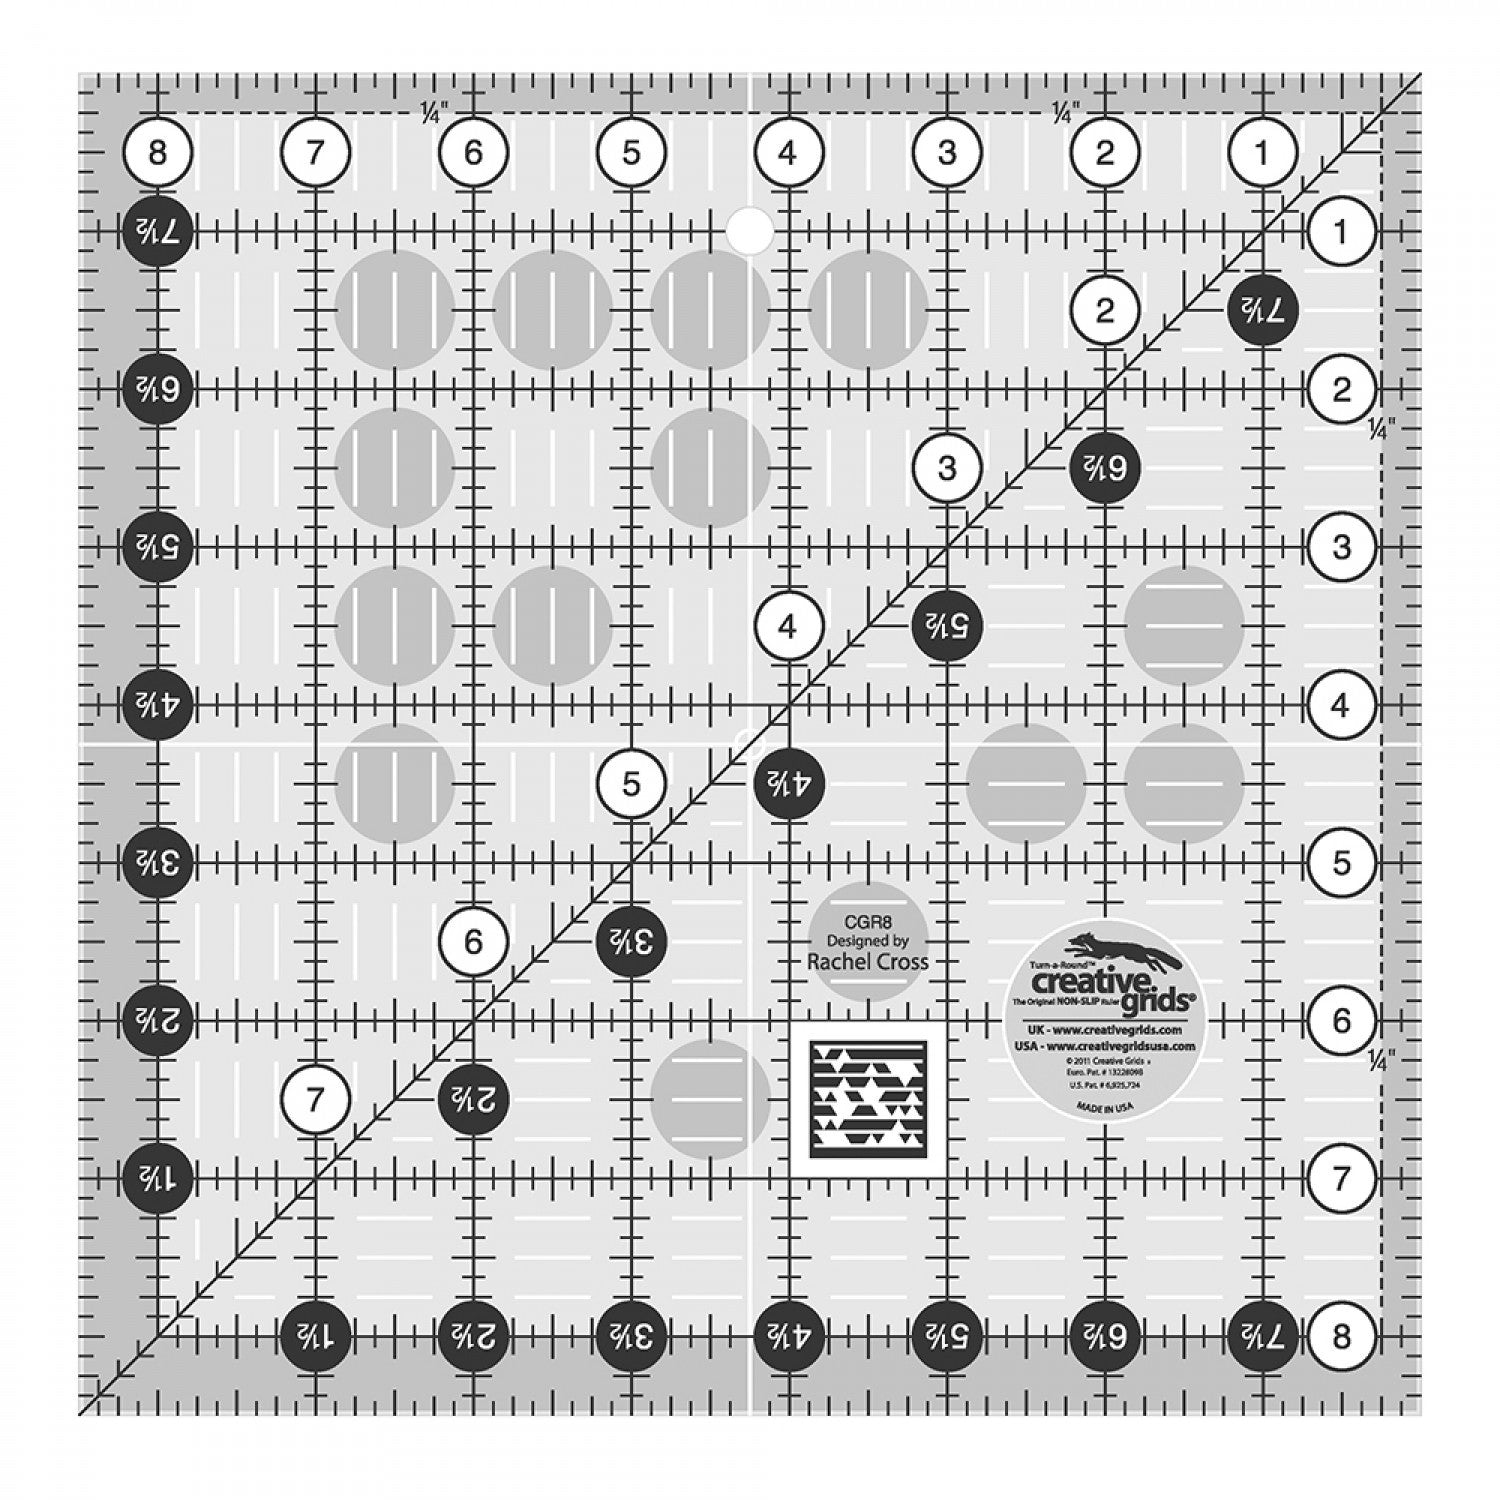 Creative Grids Quilt Ruler 8.5""